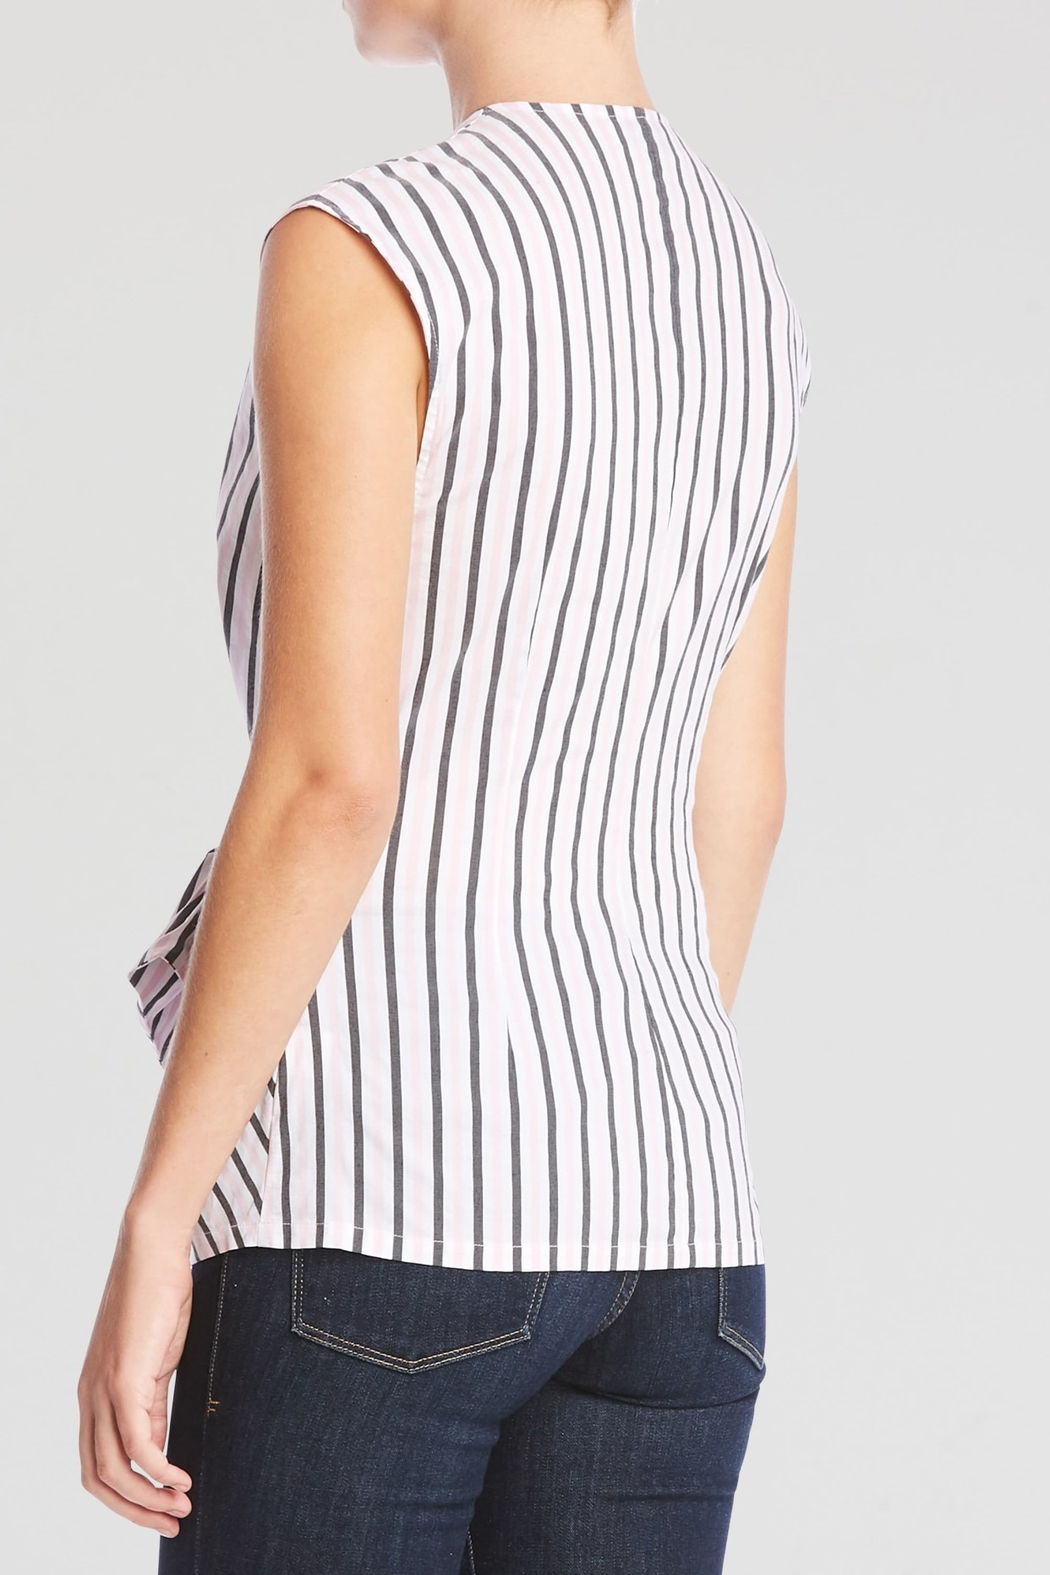 Bailey 44 Striped Tart Top - Front Full Image